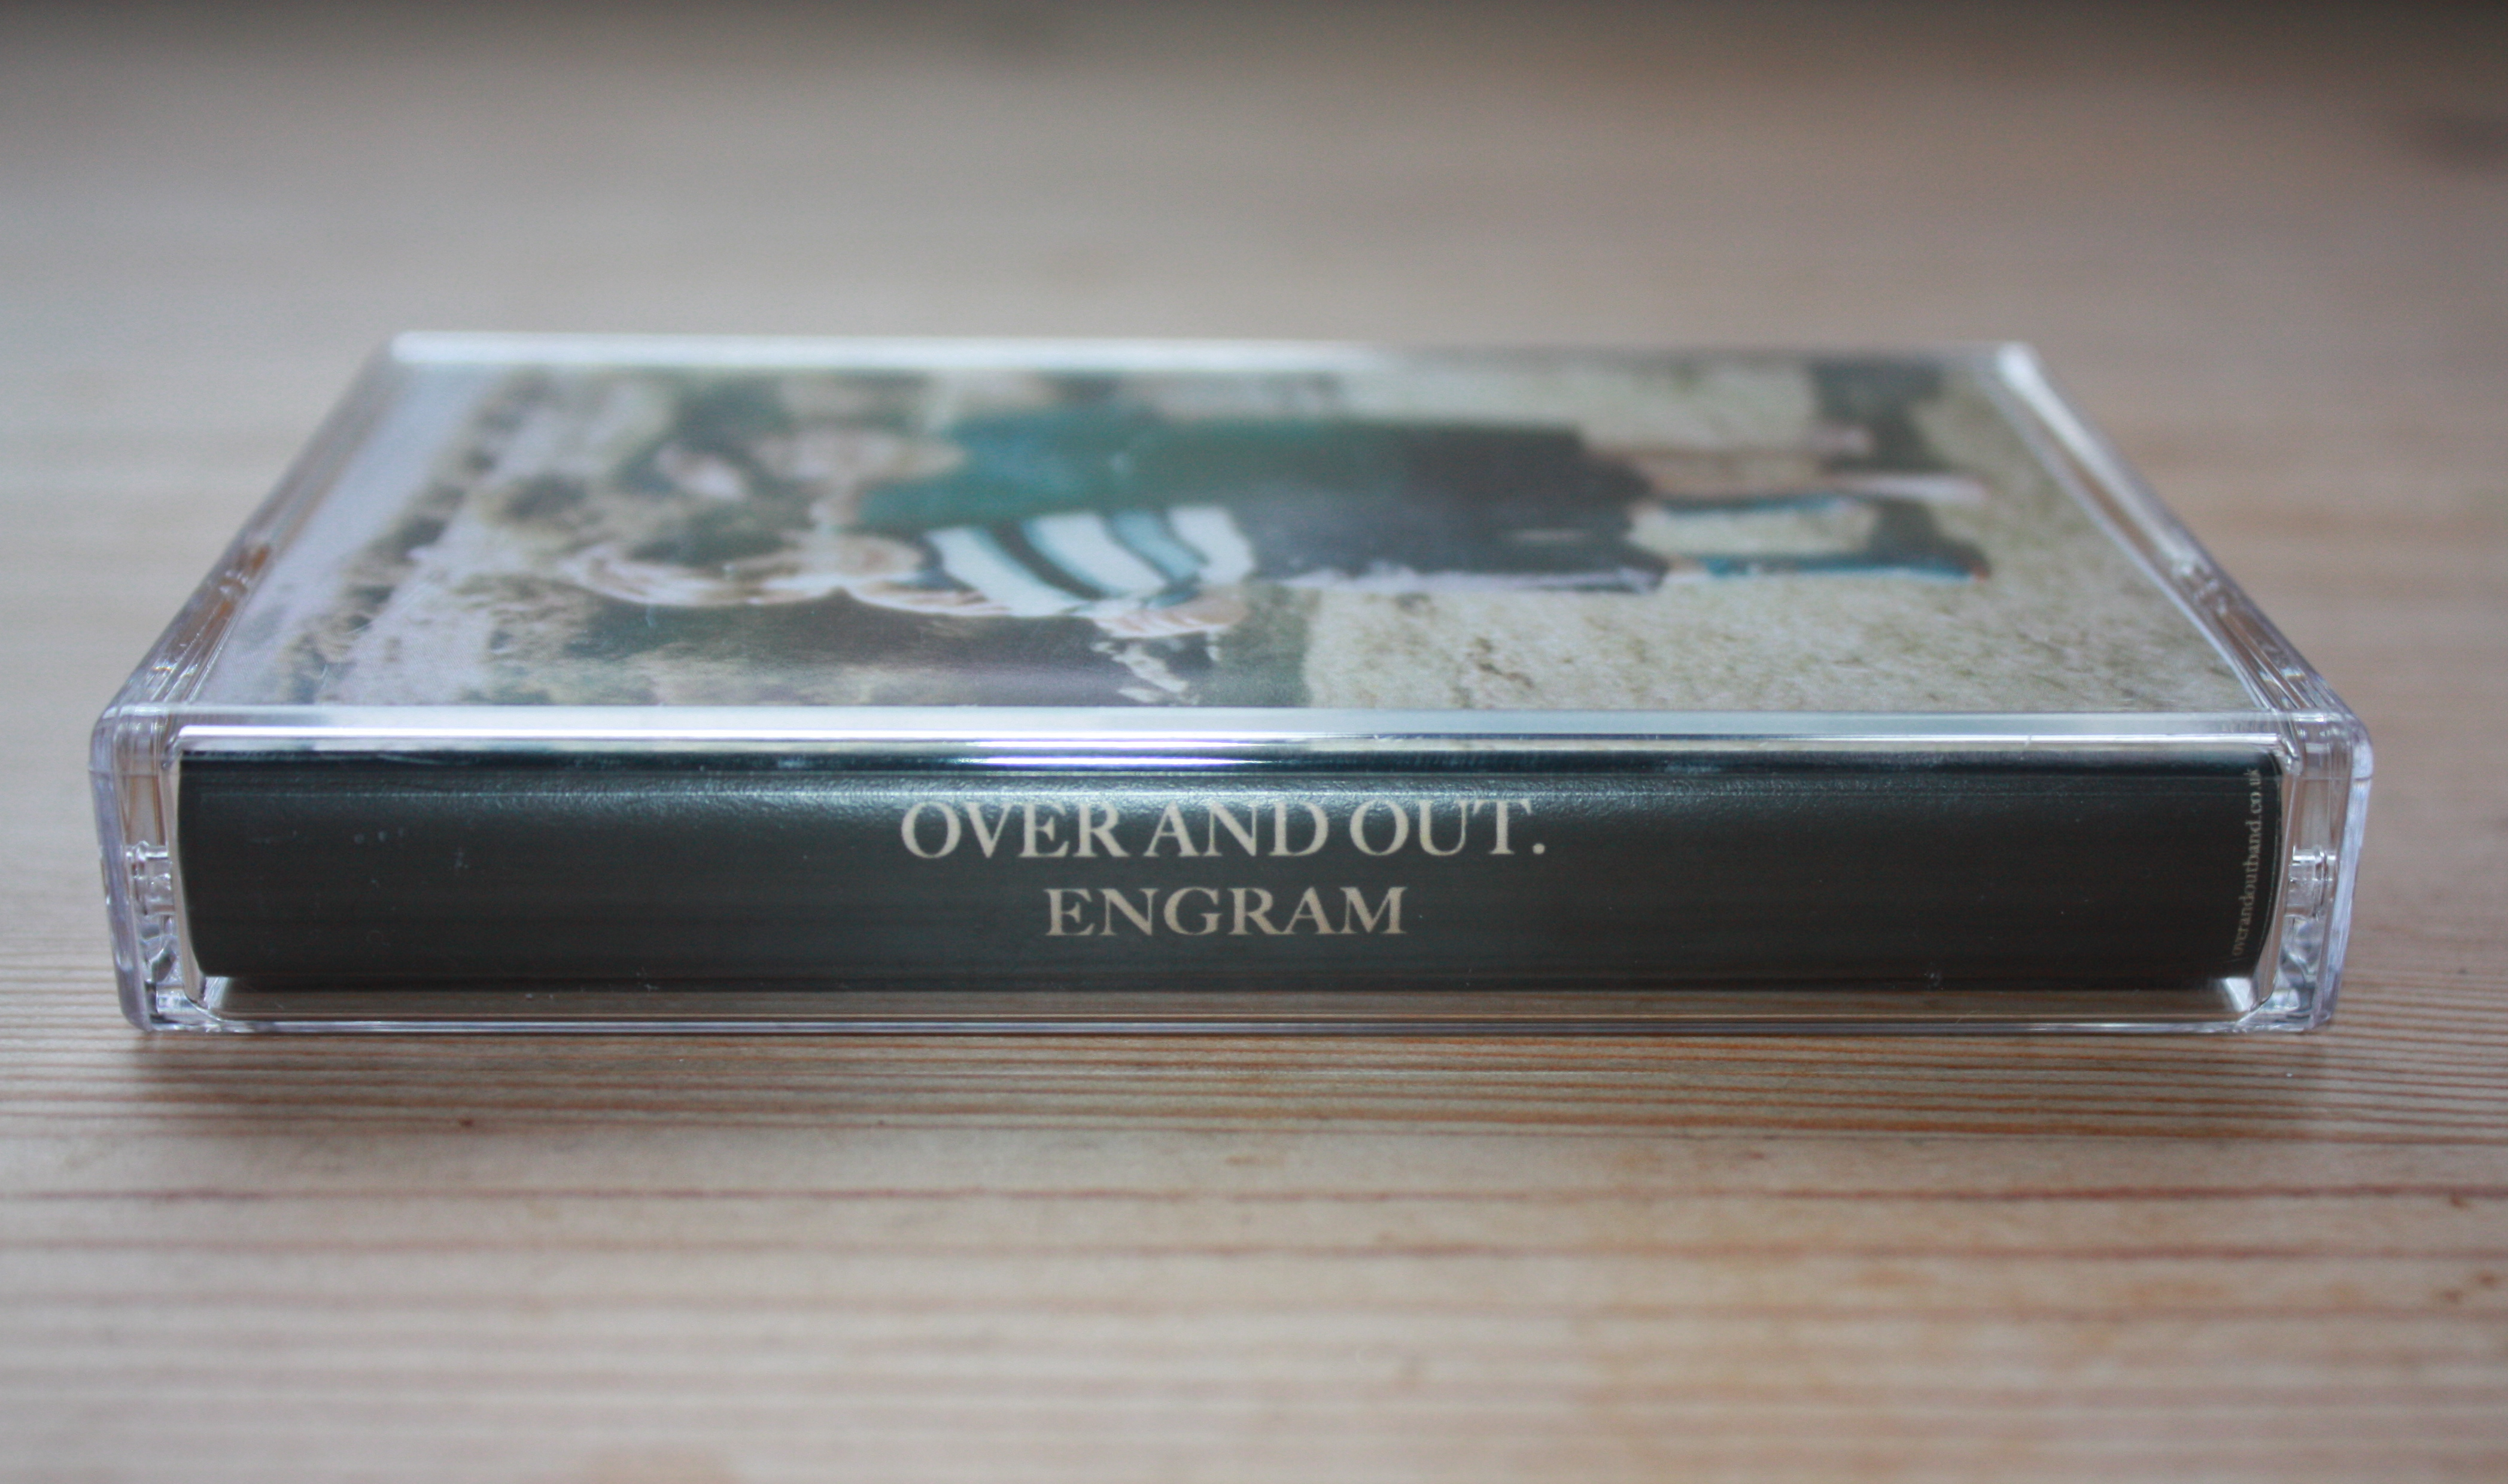 Over and Out - Engram